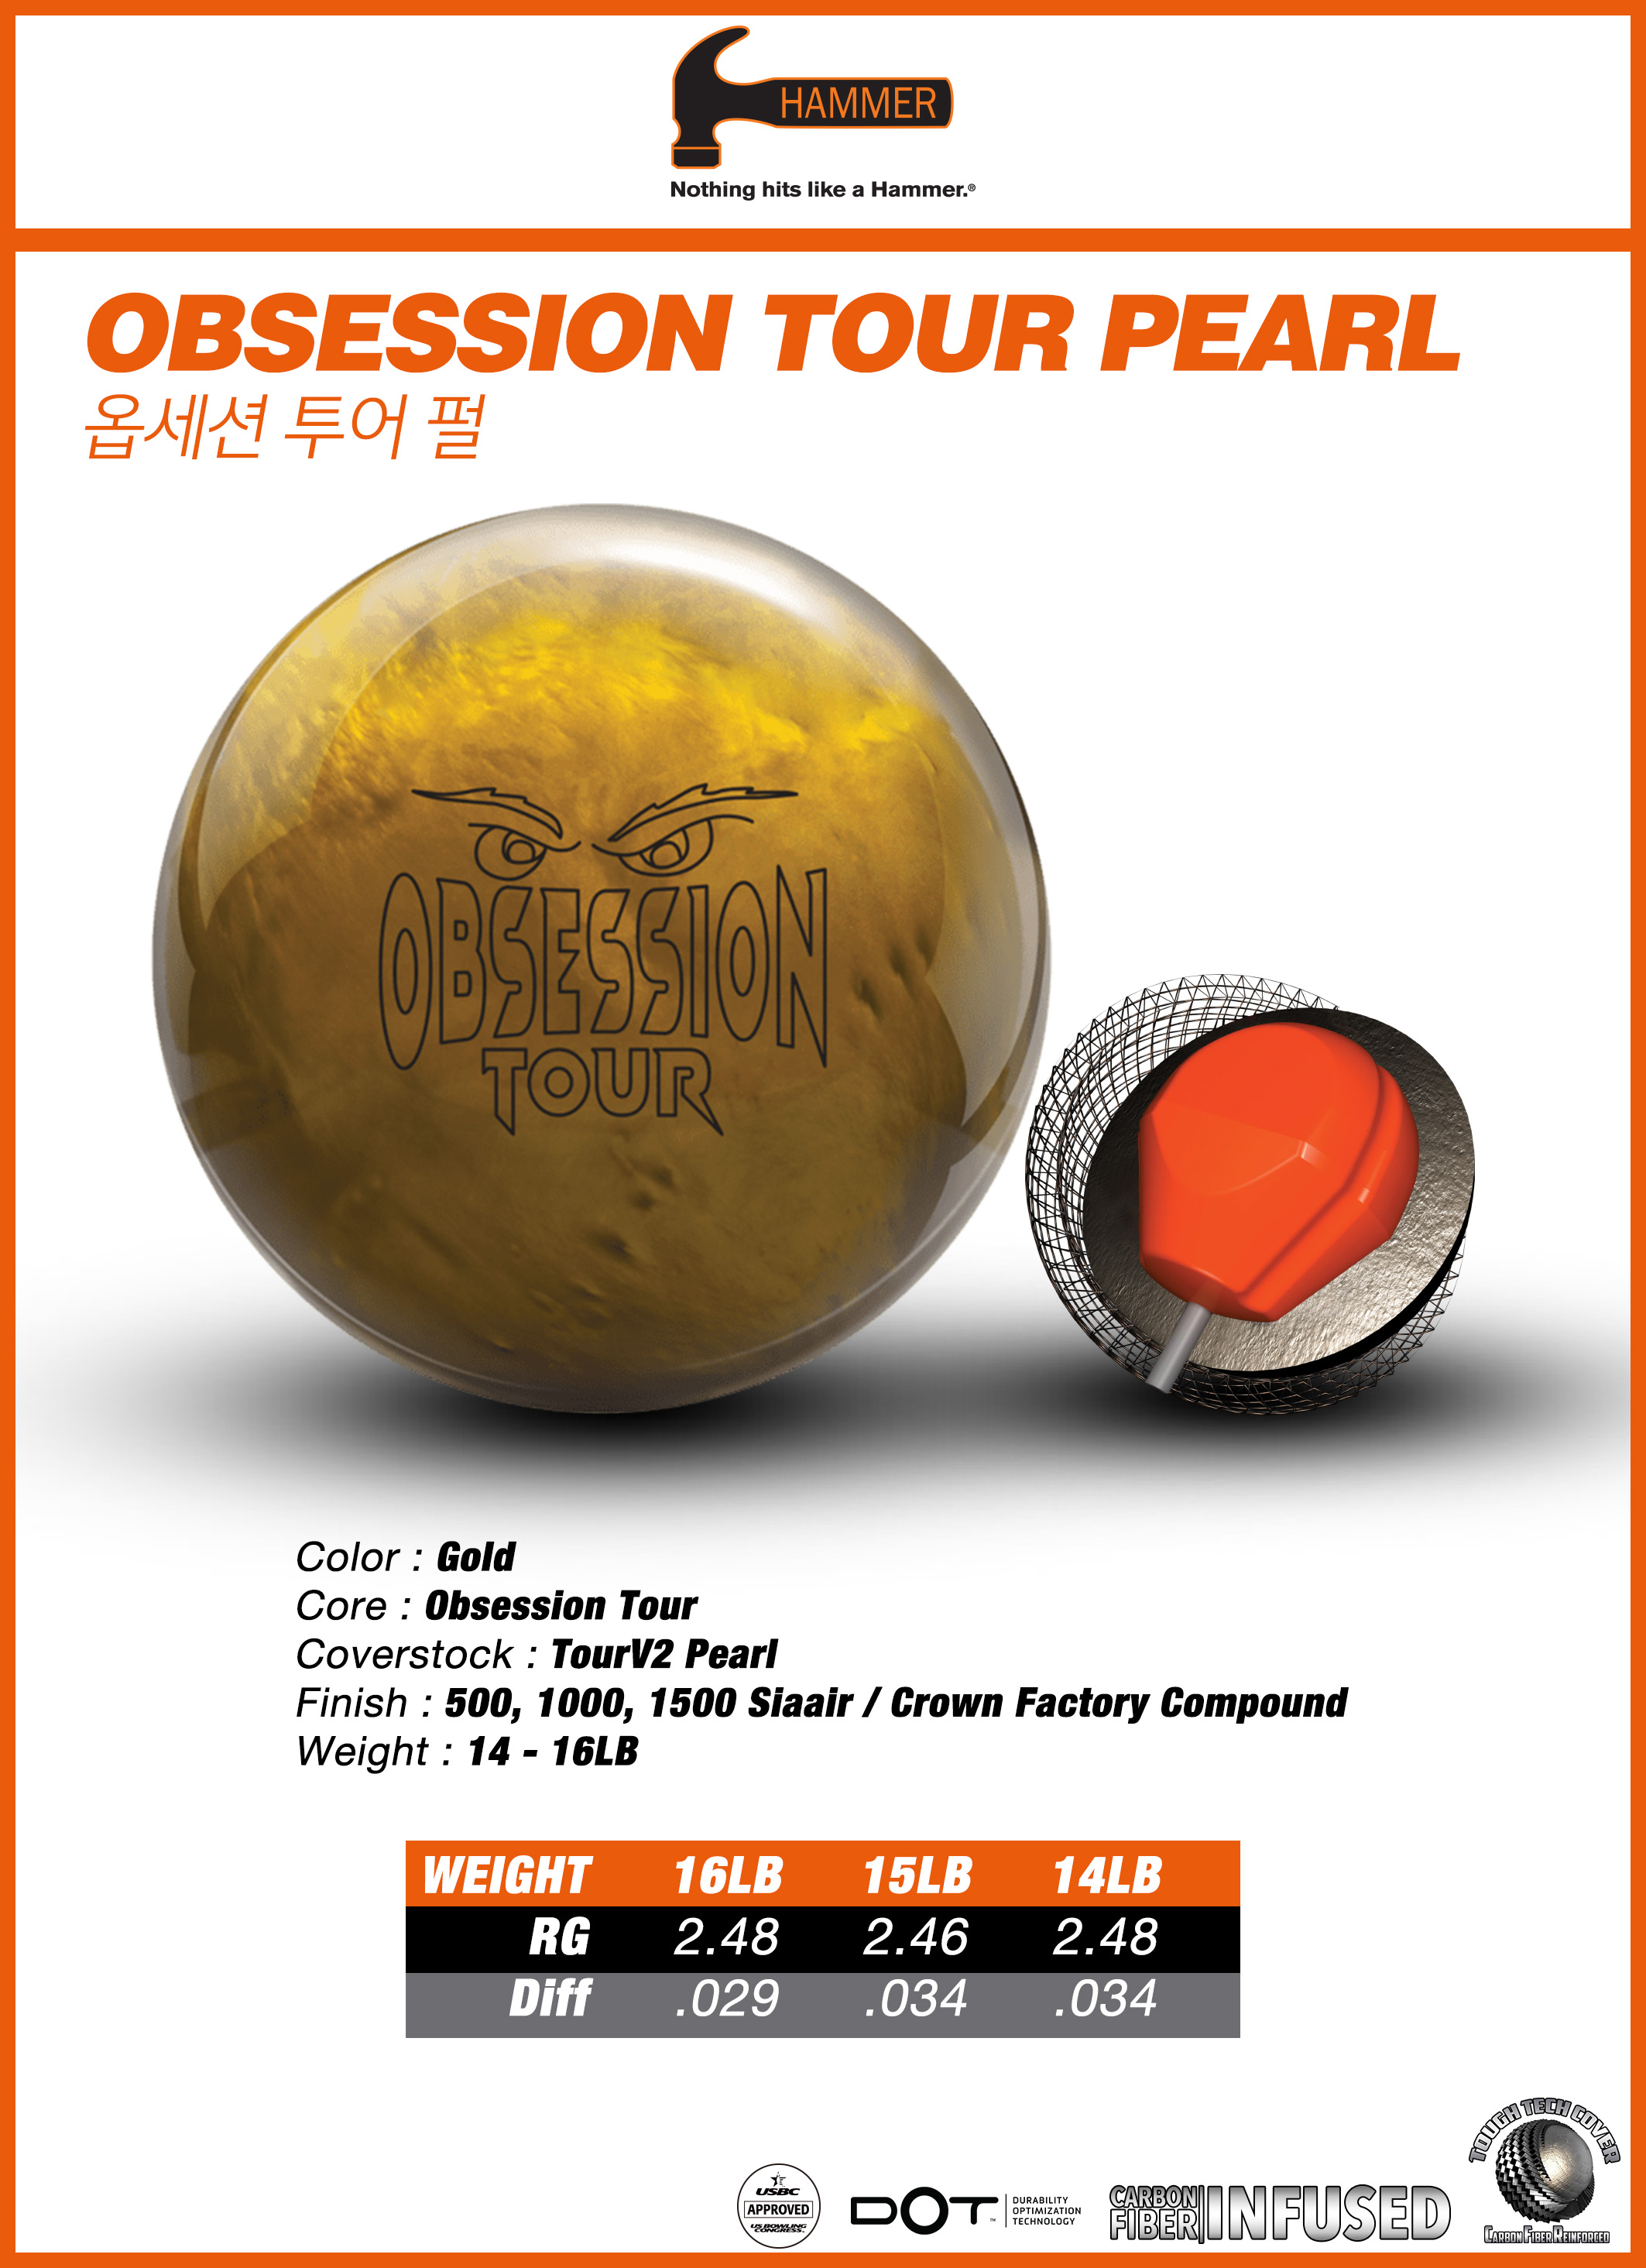 obsession_tour_pearl_ball_review.jpg